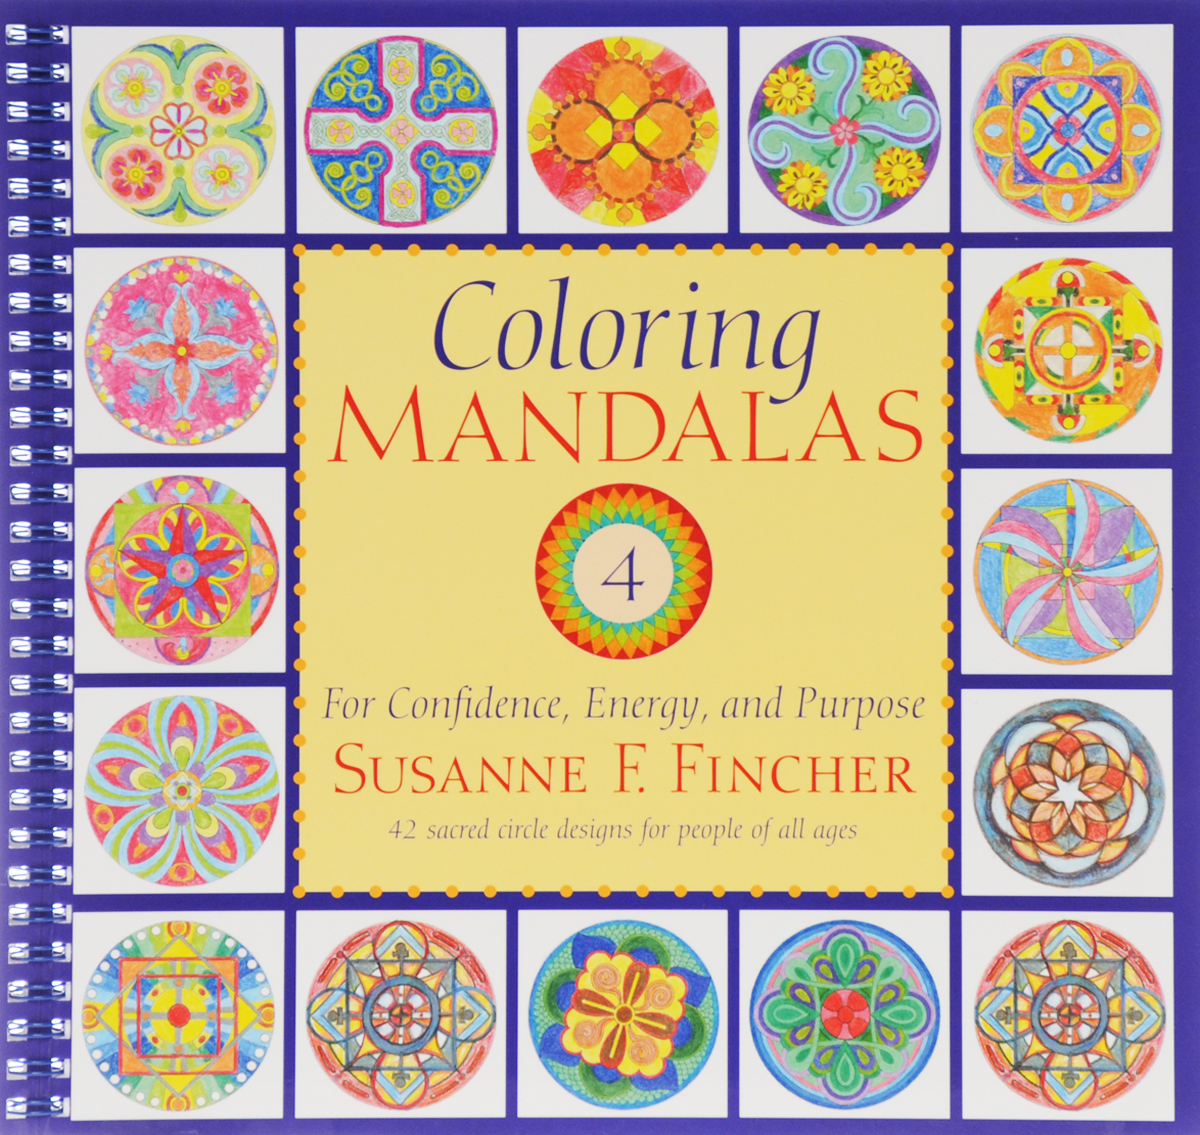 Coloring Mandalas 4: For Confidence, Energy, and Purpose coloring mandalas 2 for balance harmony and spiritual well being